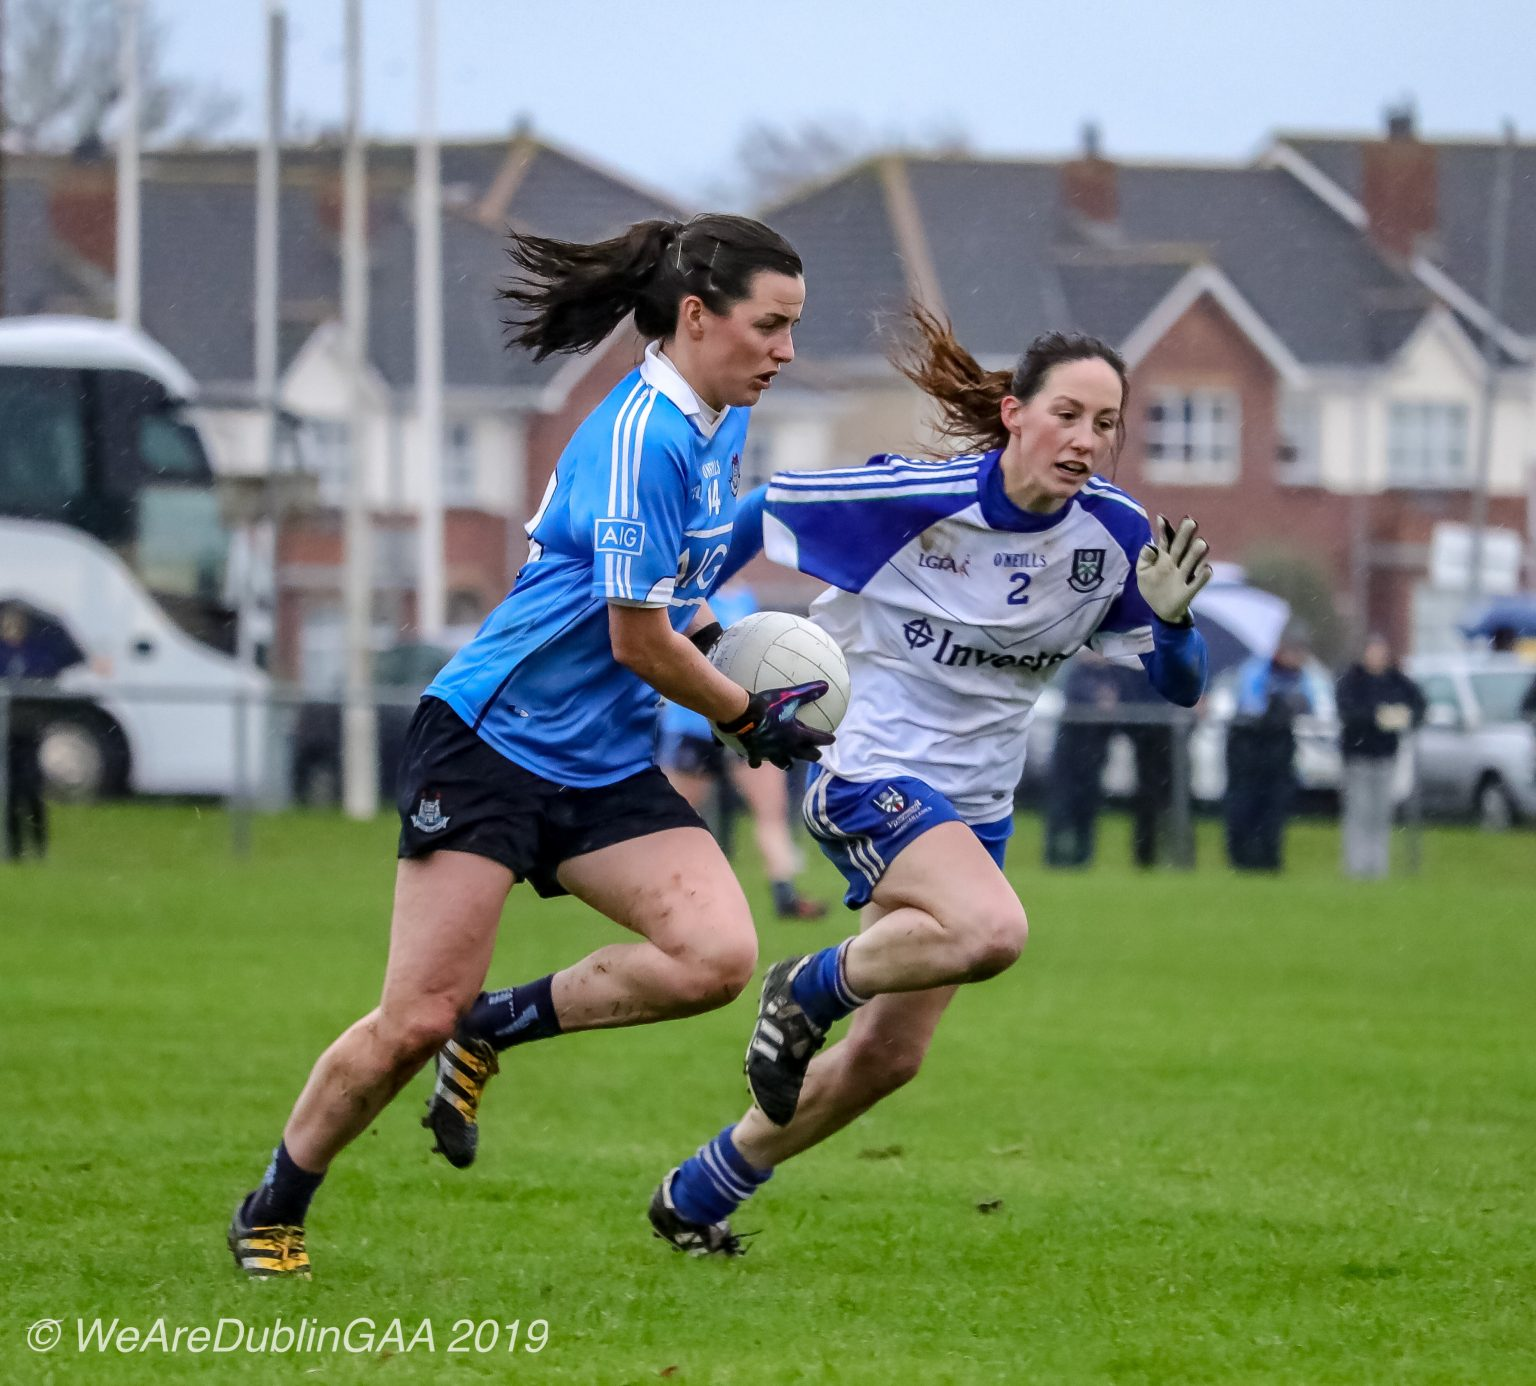 Dublin Ladies footballer in a sky blue jersey and navy shorts accelerates past a Monaghan player in a white jersey with blue sleeves and blue shorts, both teams meet each other this weekend in a Lidl National Football League Round 5 Fixture